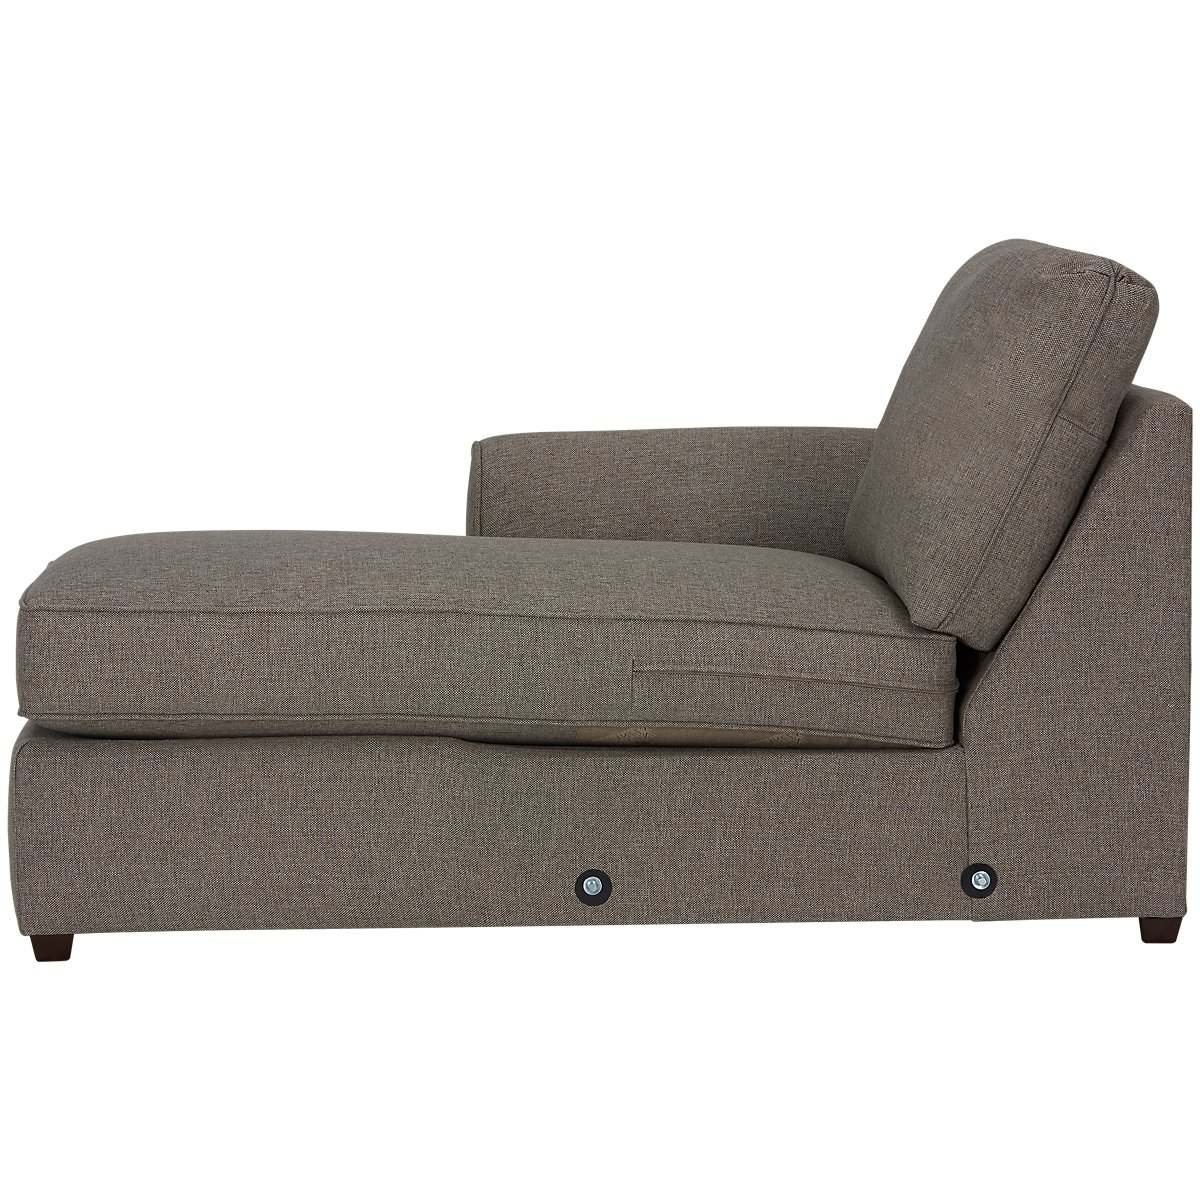 City furniture asheville brown fabric left chaise sectional for Brown sectionals with chaise